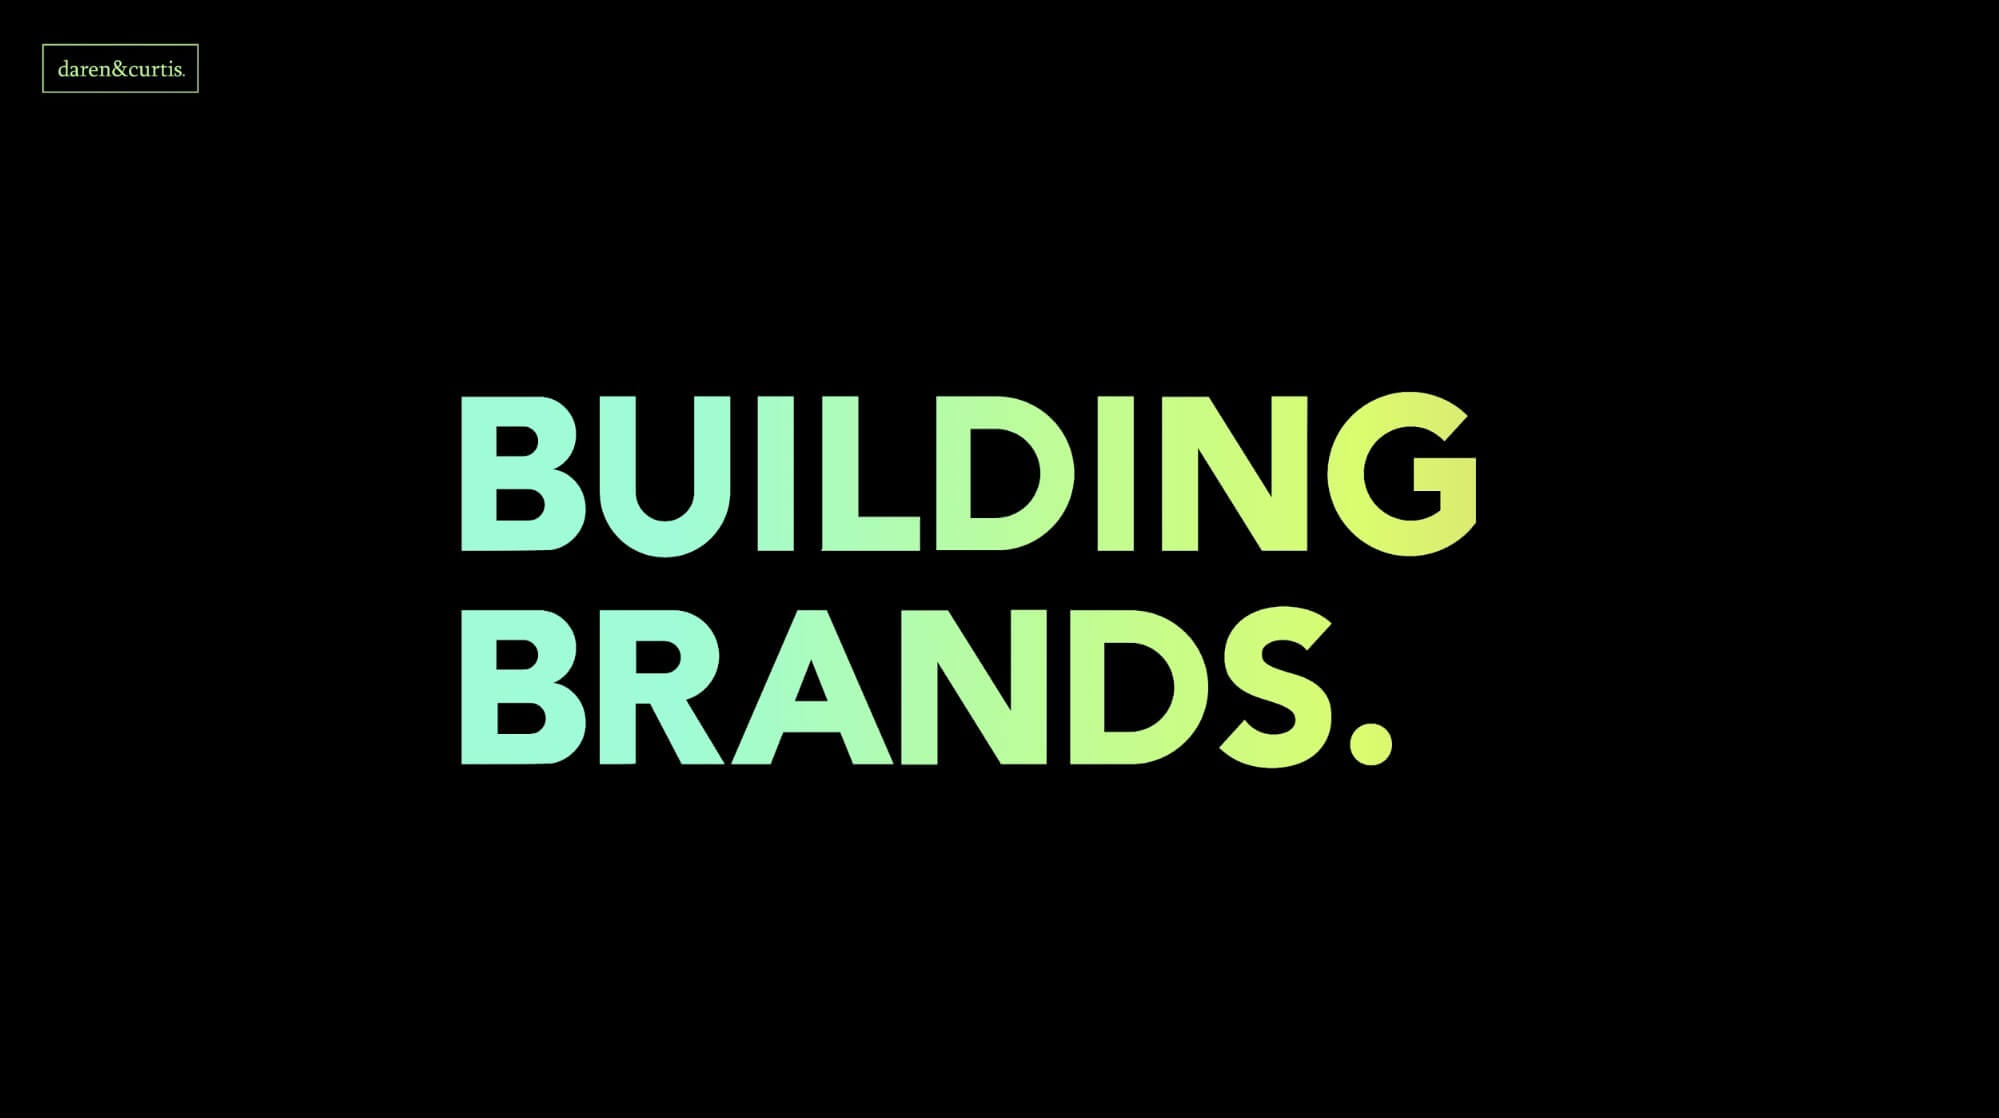 daren&curtis - BUILDING BRANDS